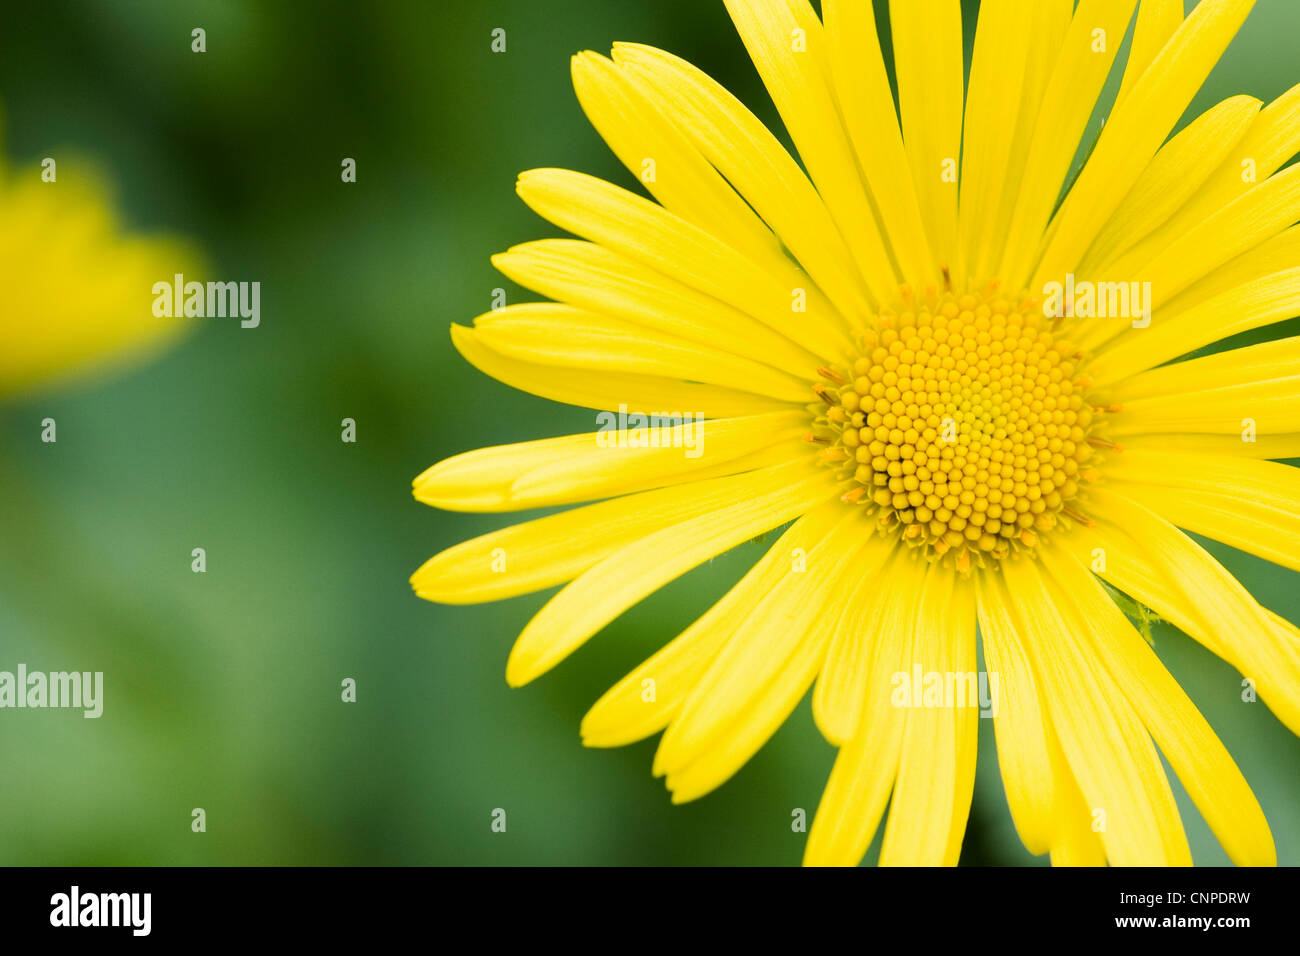 Doronicum orientale flower growing in an English garden. Leopard's bane flower. - Stock Image